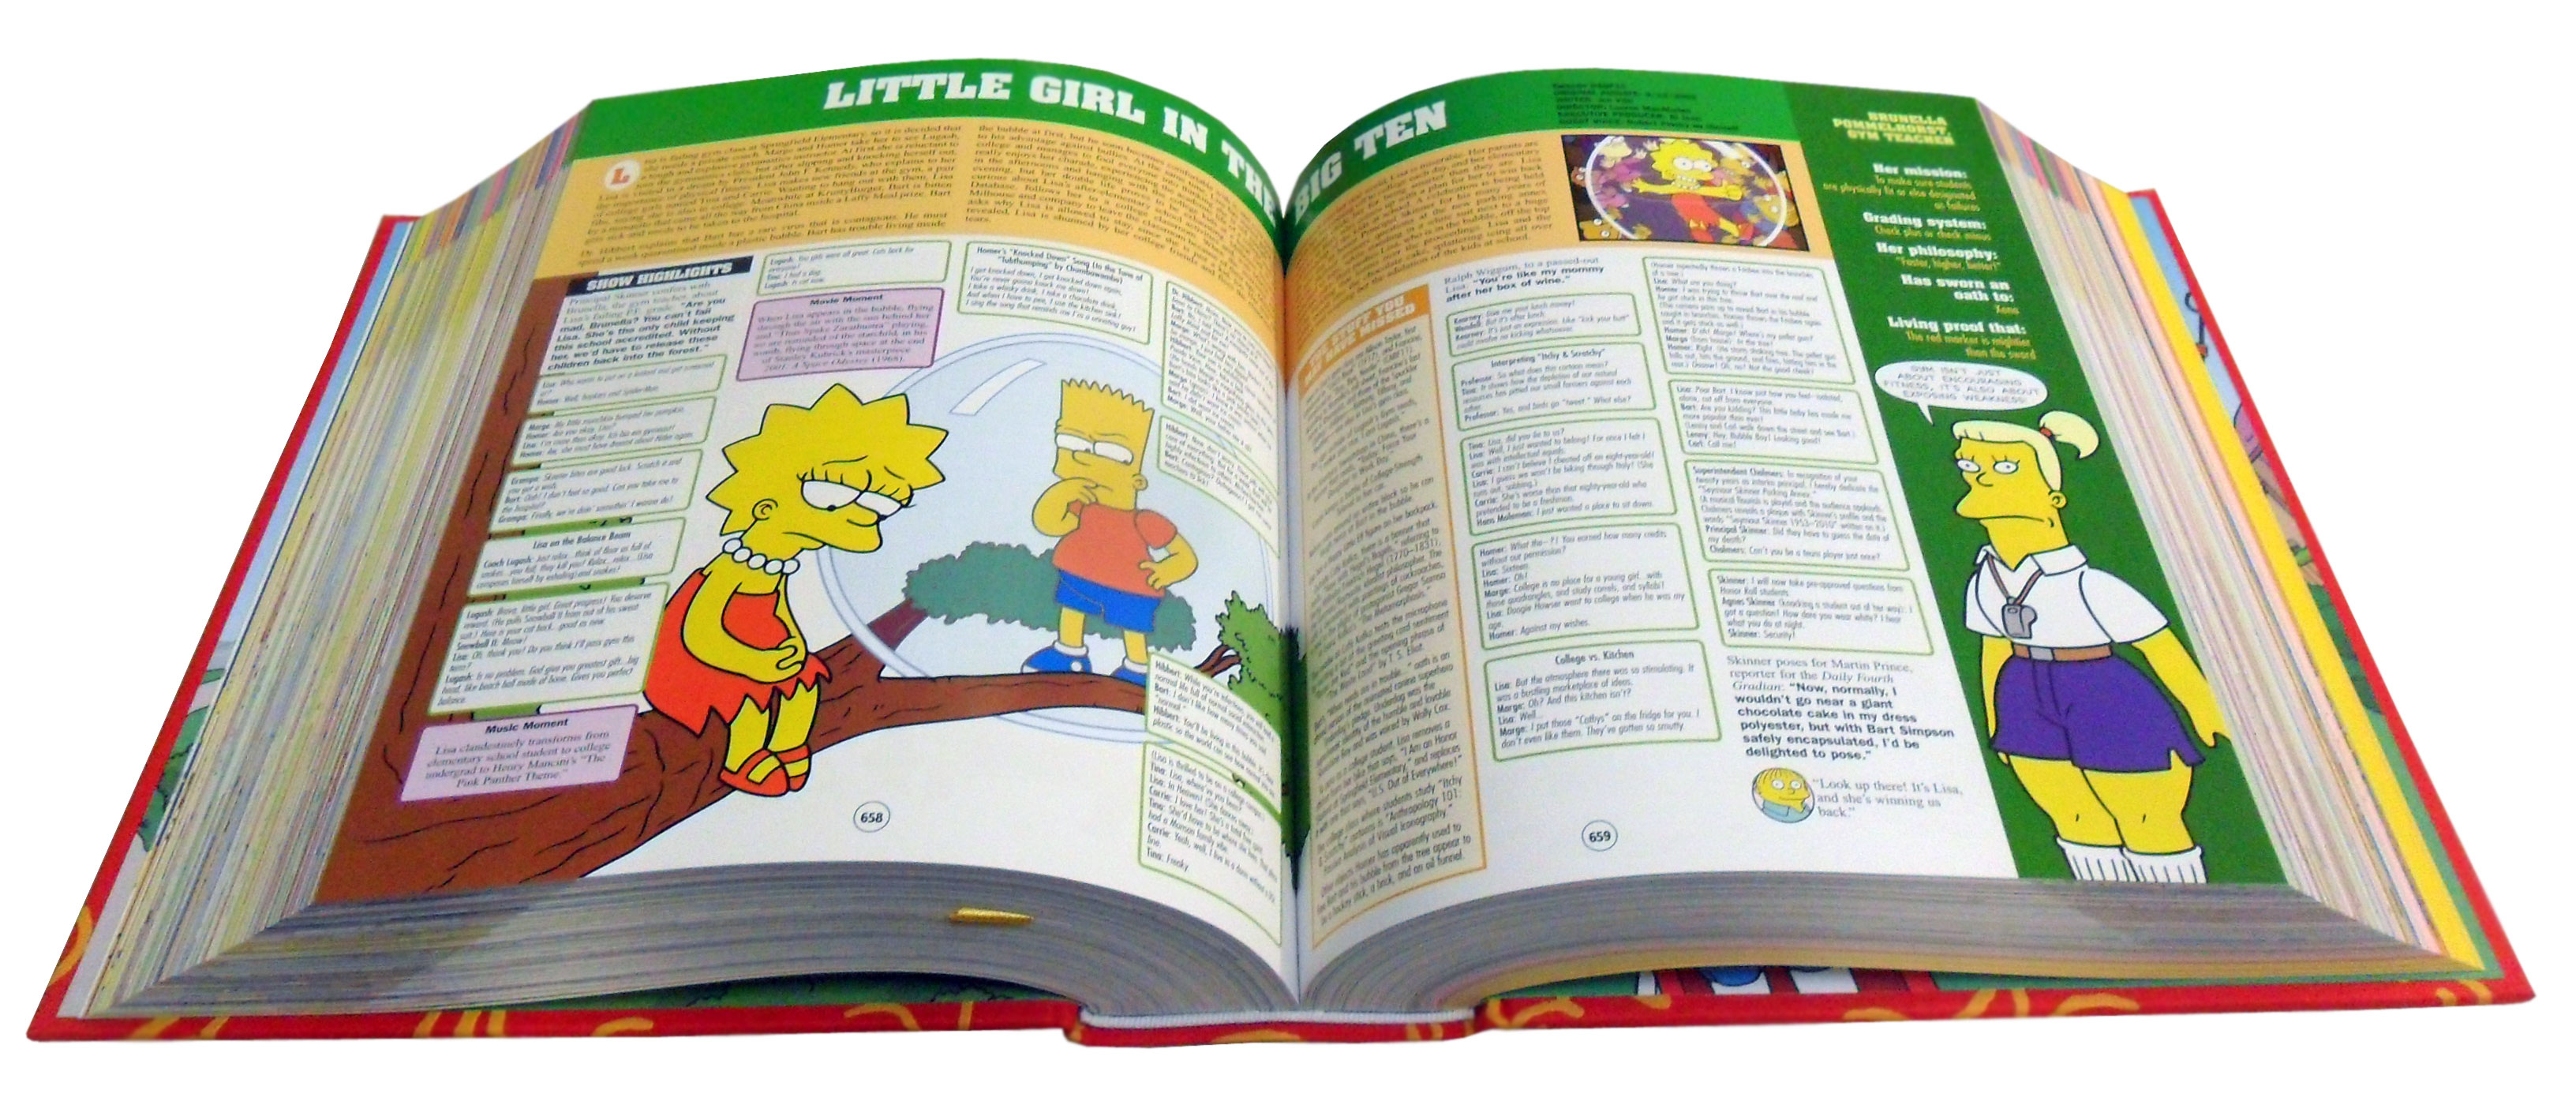 simpsons world the ultimate episode guide seasons 1 20 pdf